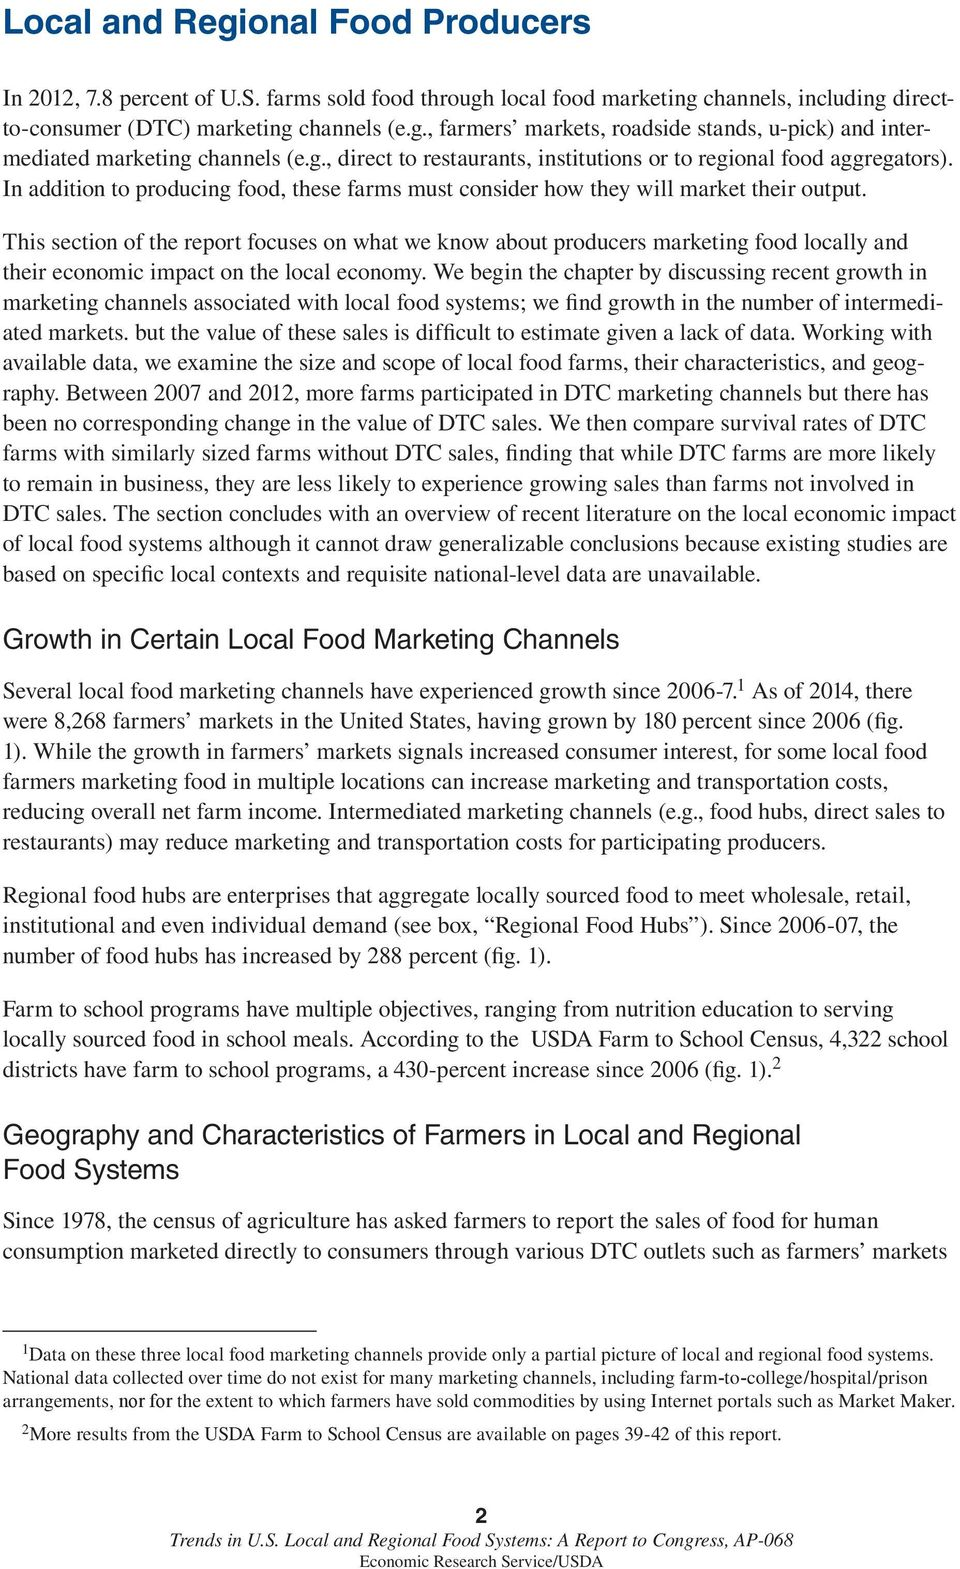 This section of the report focuses on what we know about producers marketing food locally and their economic impact on the local economy.